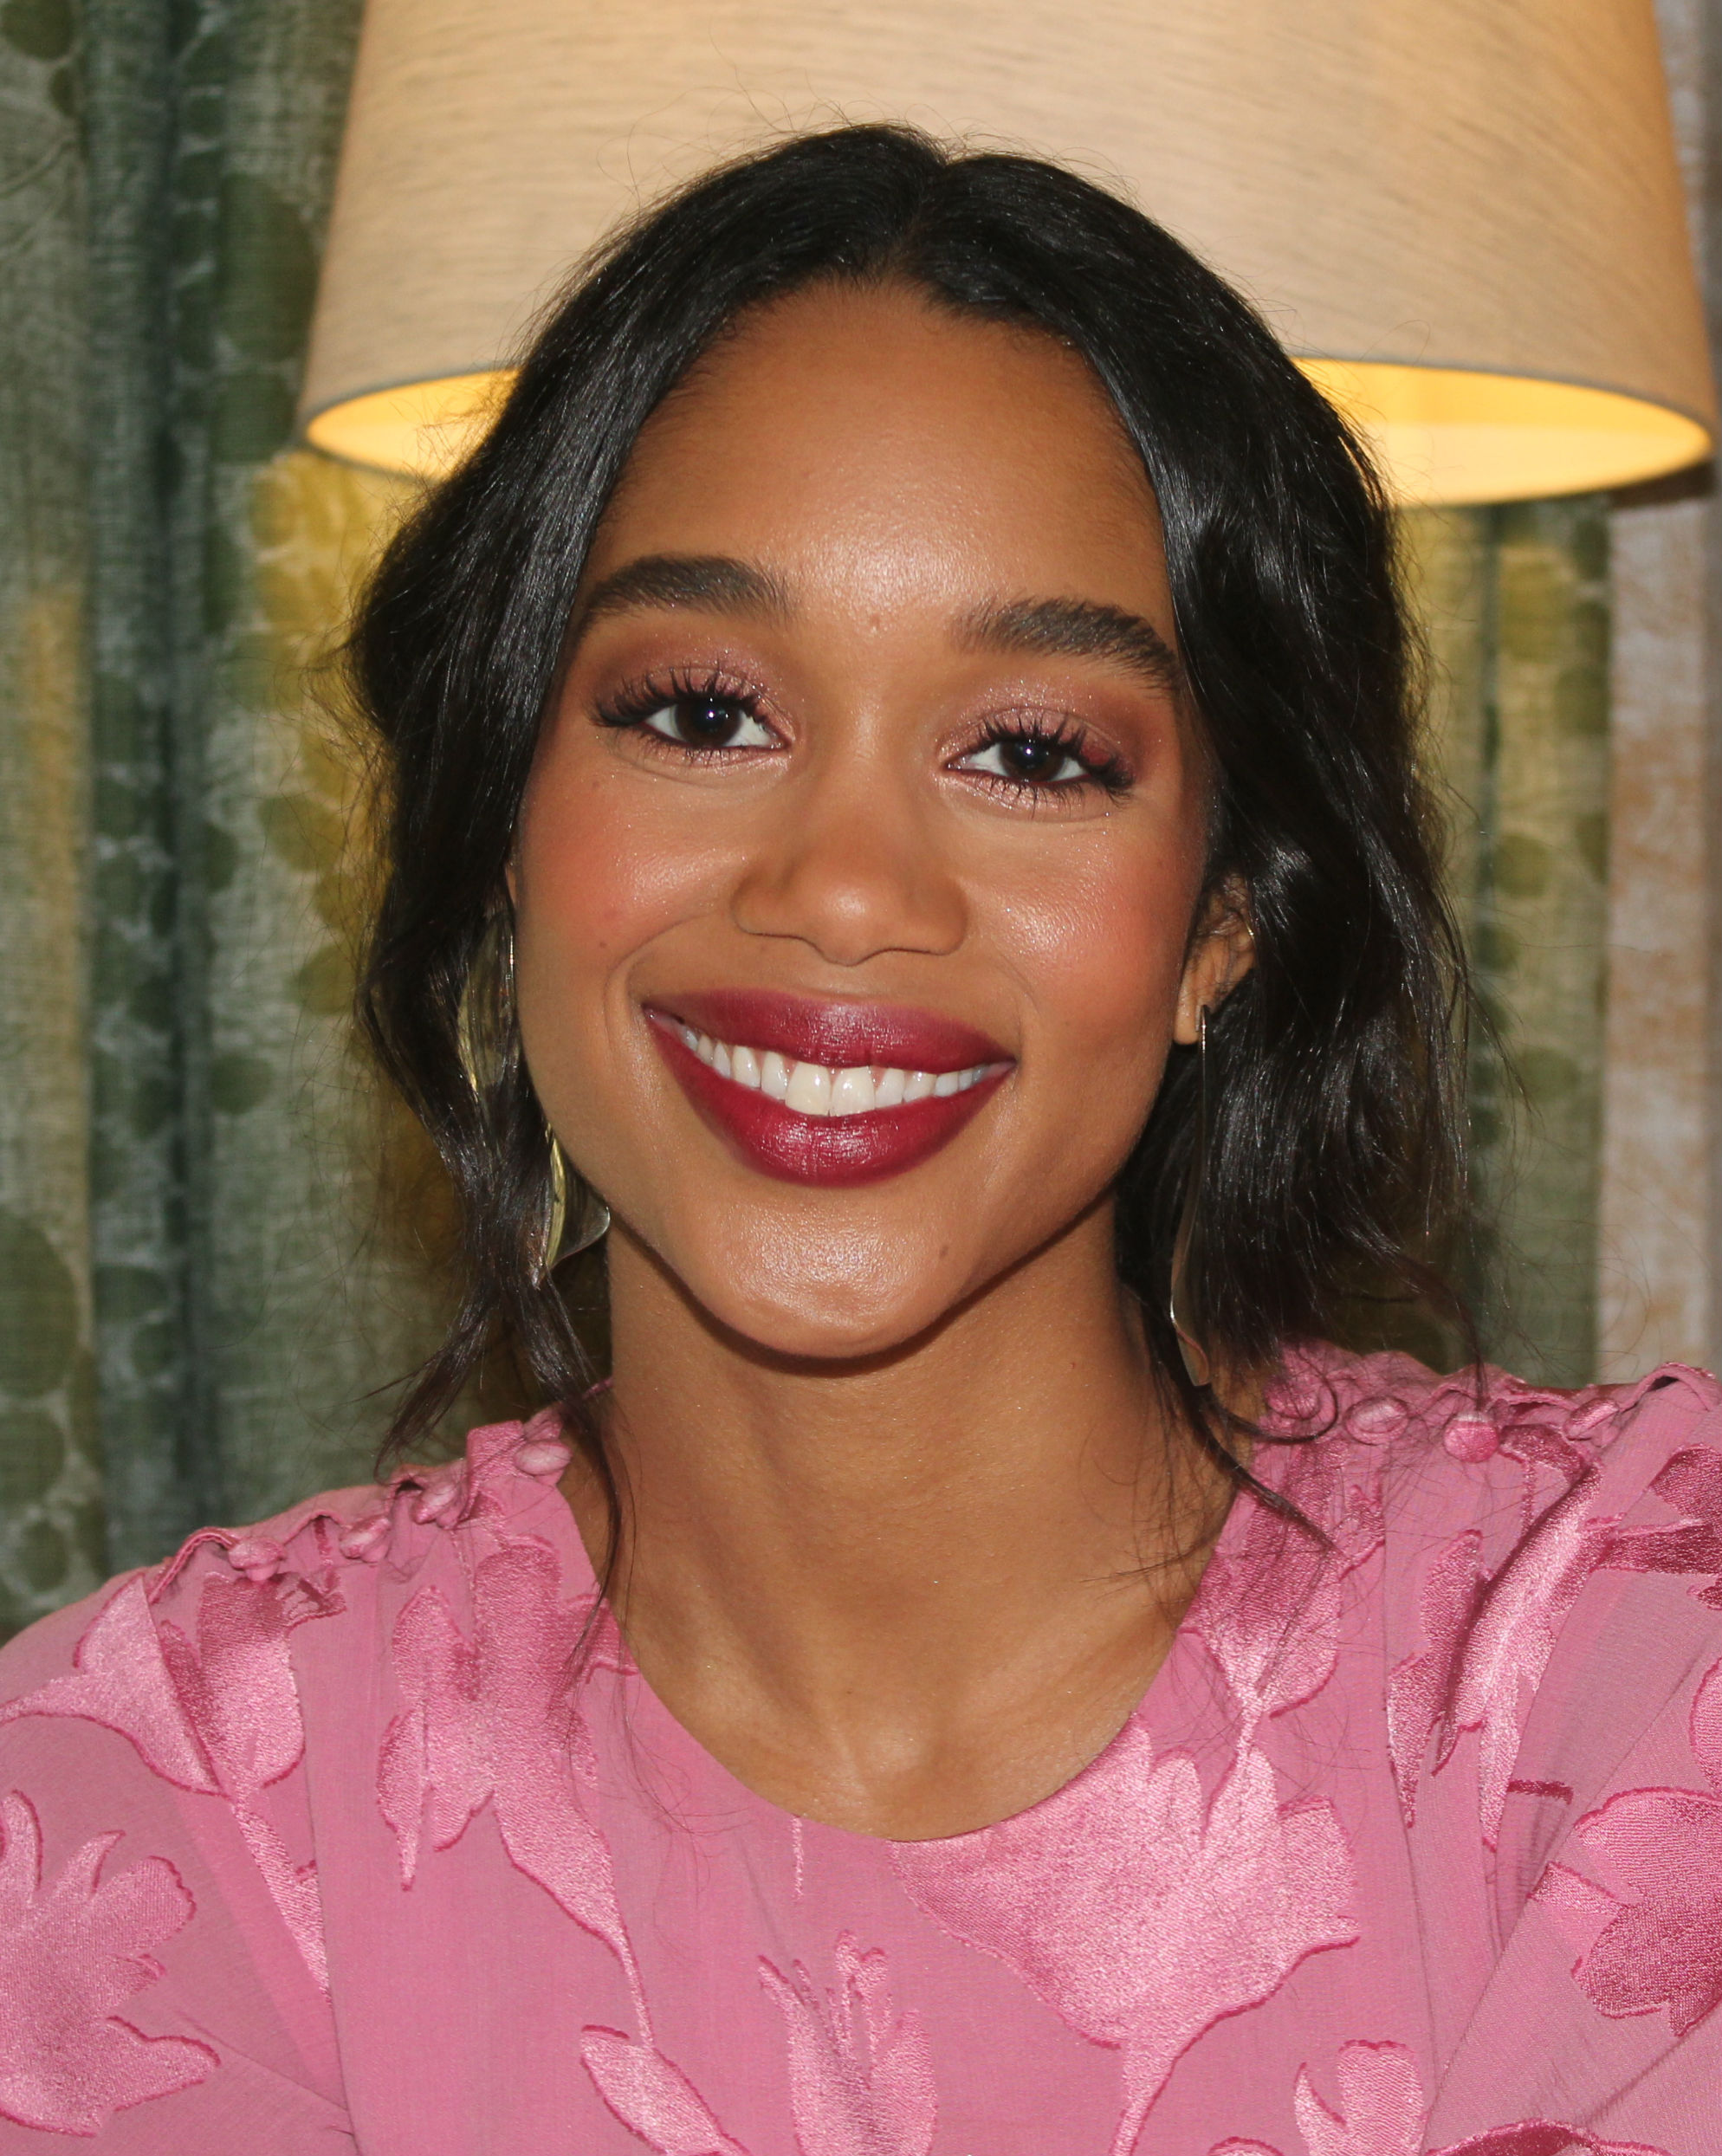 Young Laura Harrier nudes (67 photos), Paparazzi